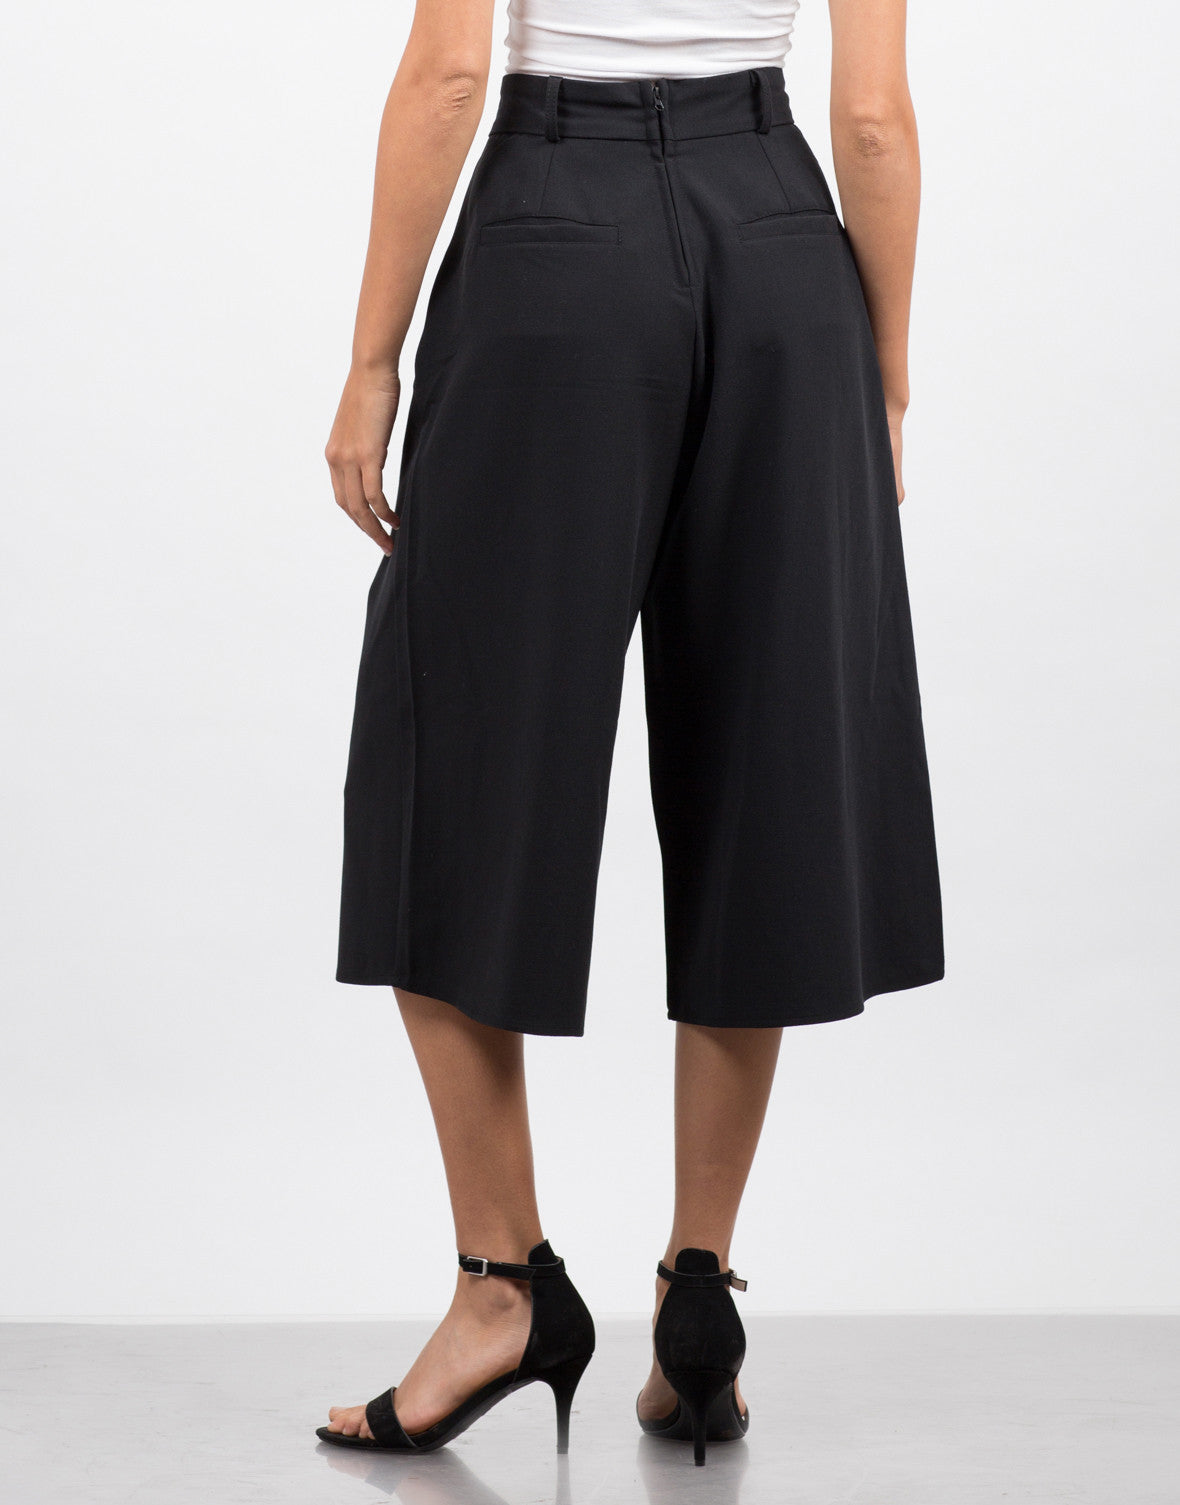 Back View of Wide Leg Culotte Pants